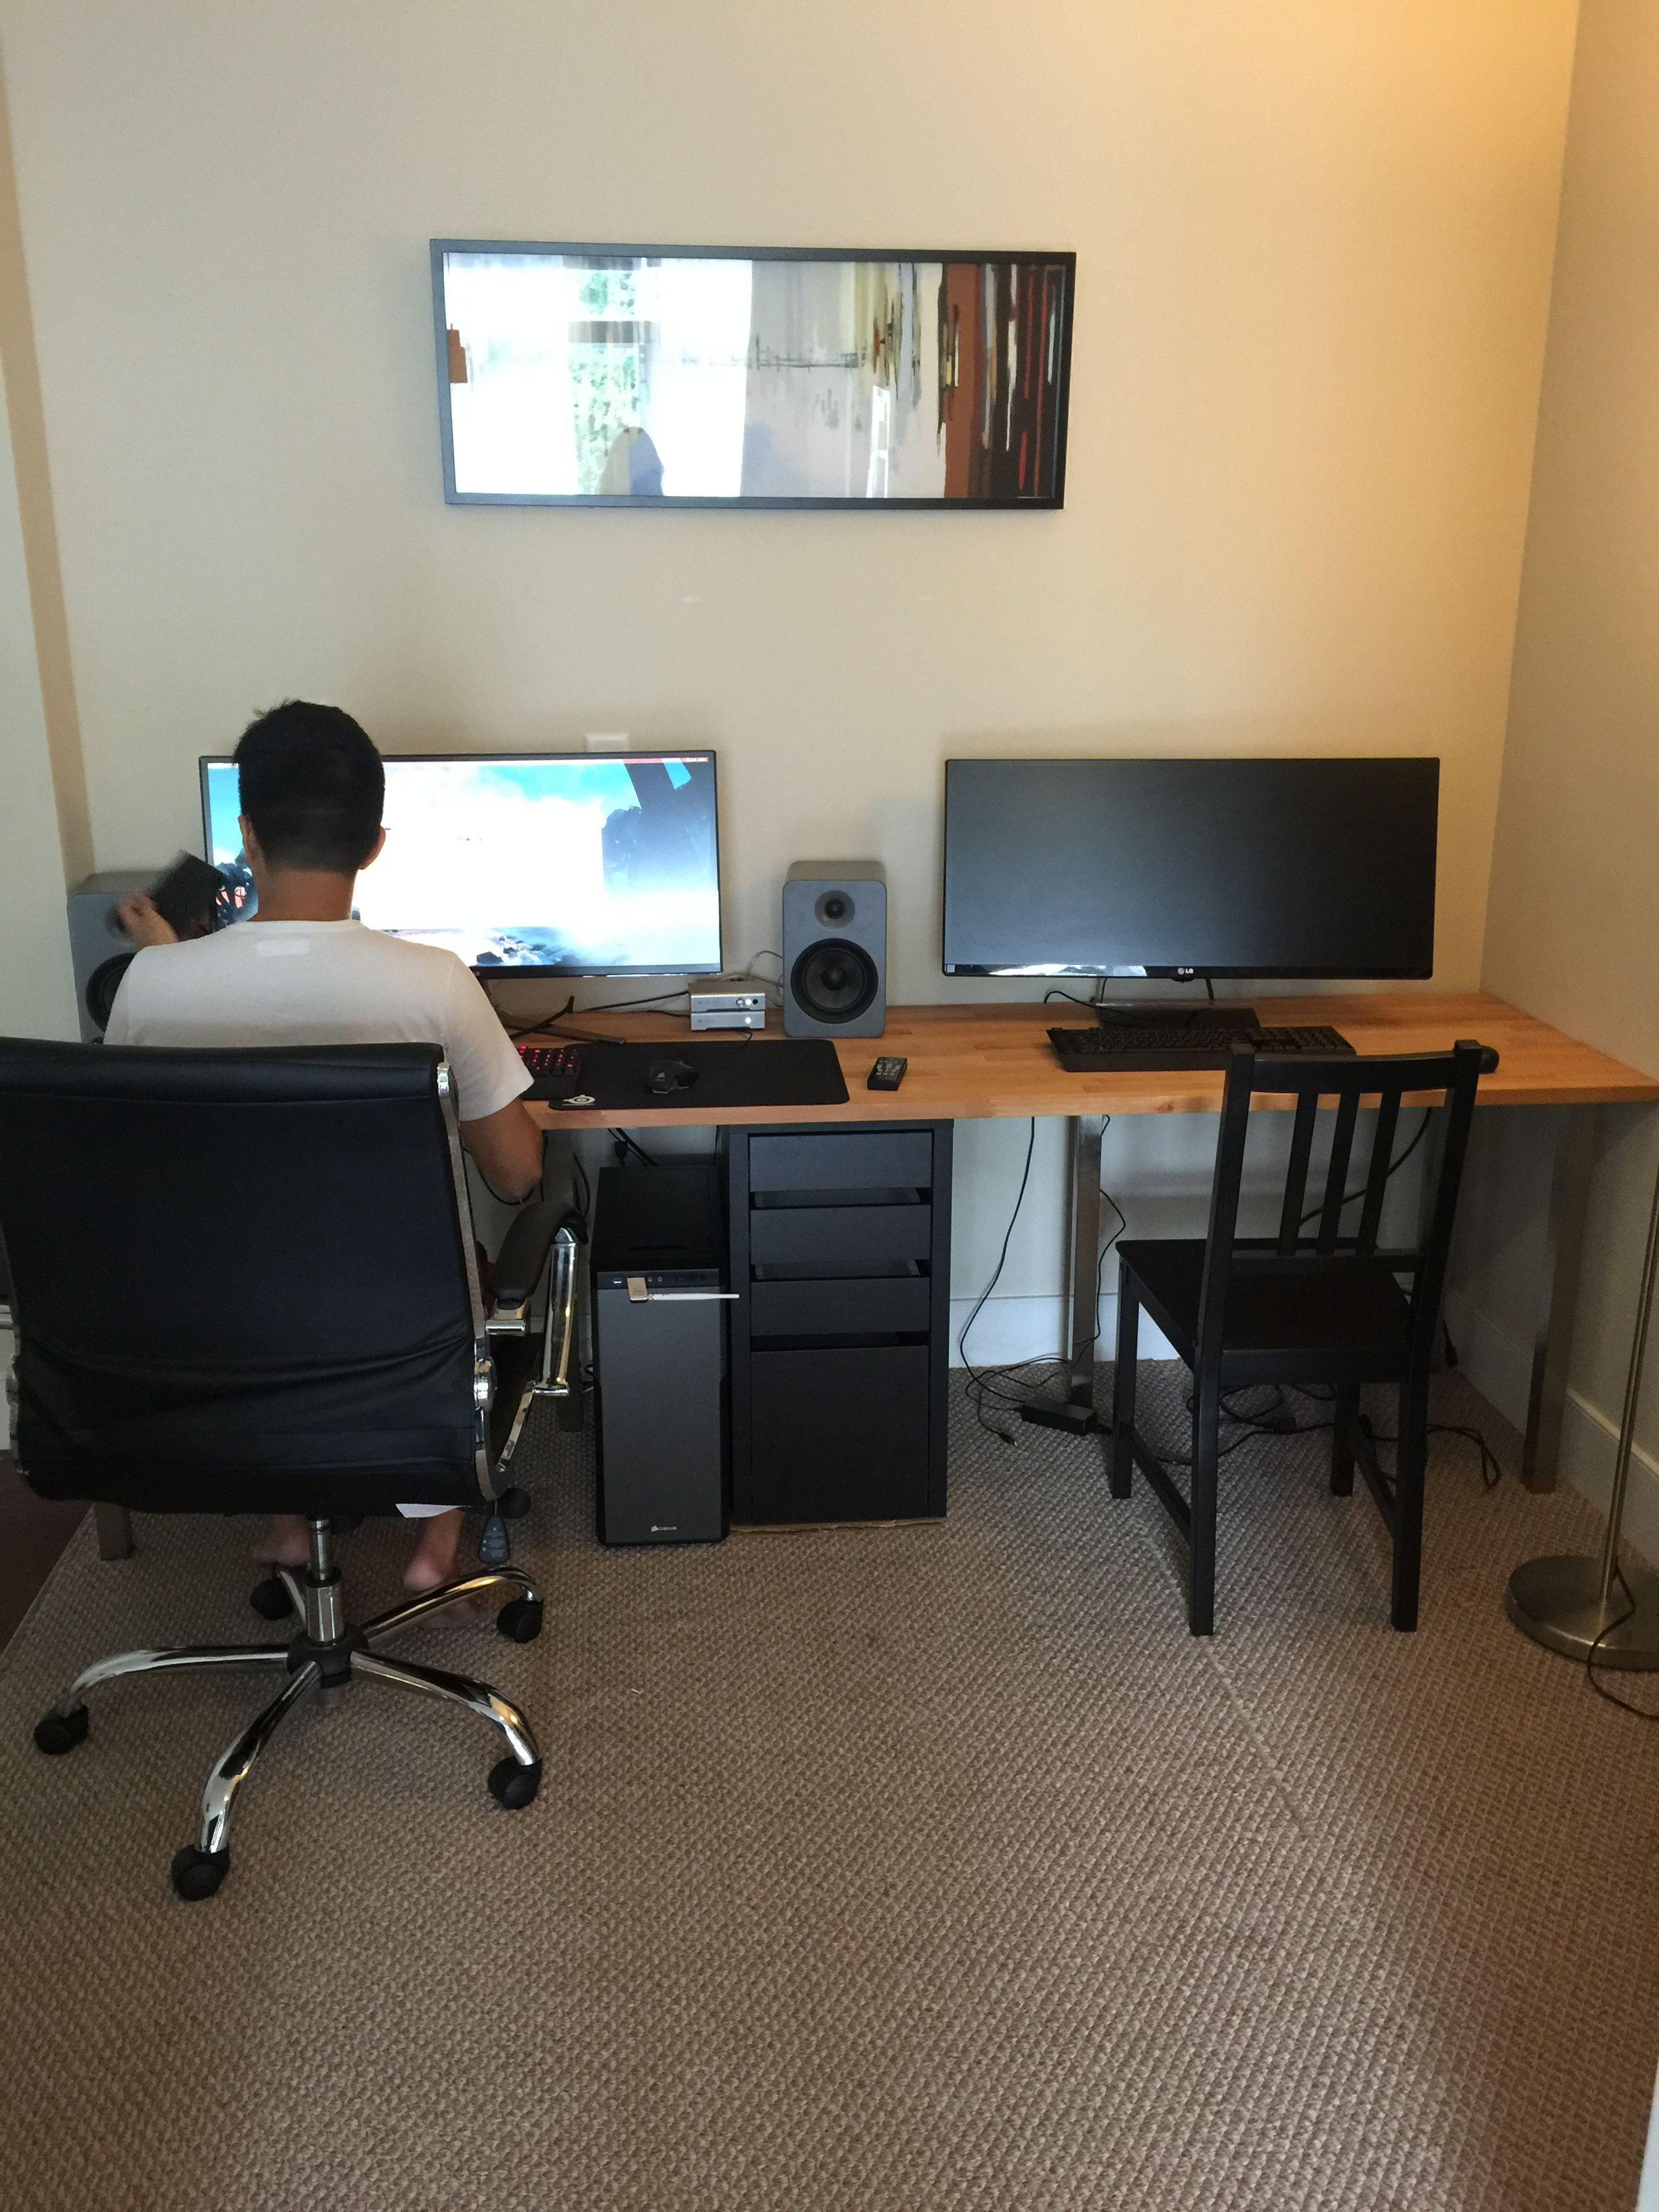 home office furniture for two. Check Out The Most Popular Desks For Two People: T Shaped, Office Desks, Workstations, Home Office, Side By Side, 2 Person Corner Desk. Furniture